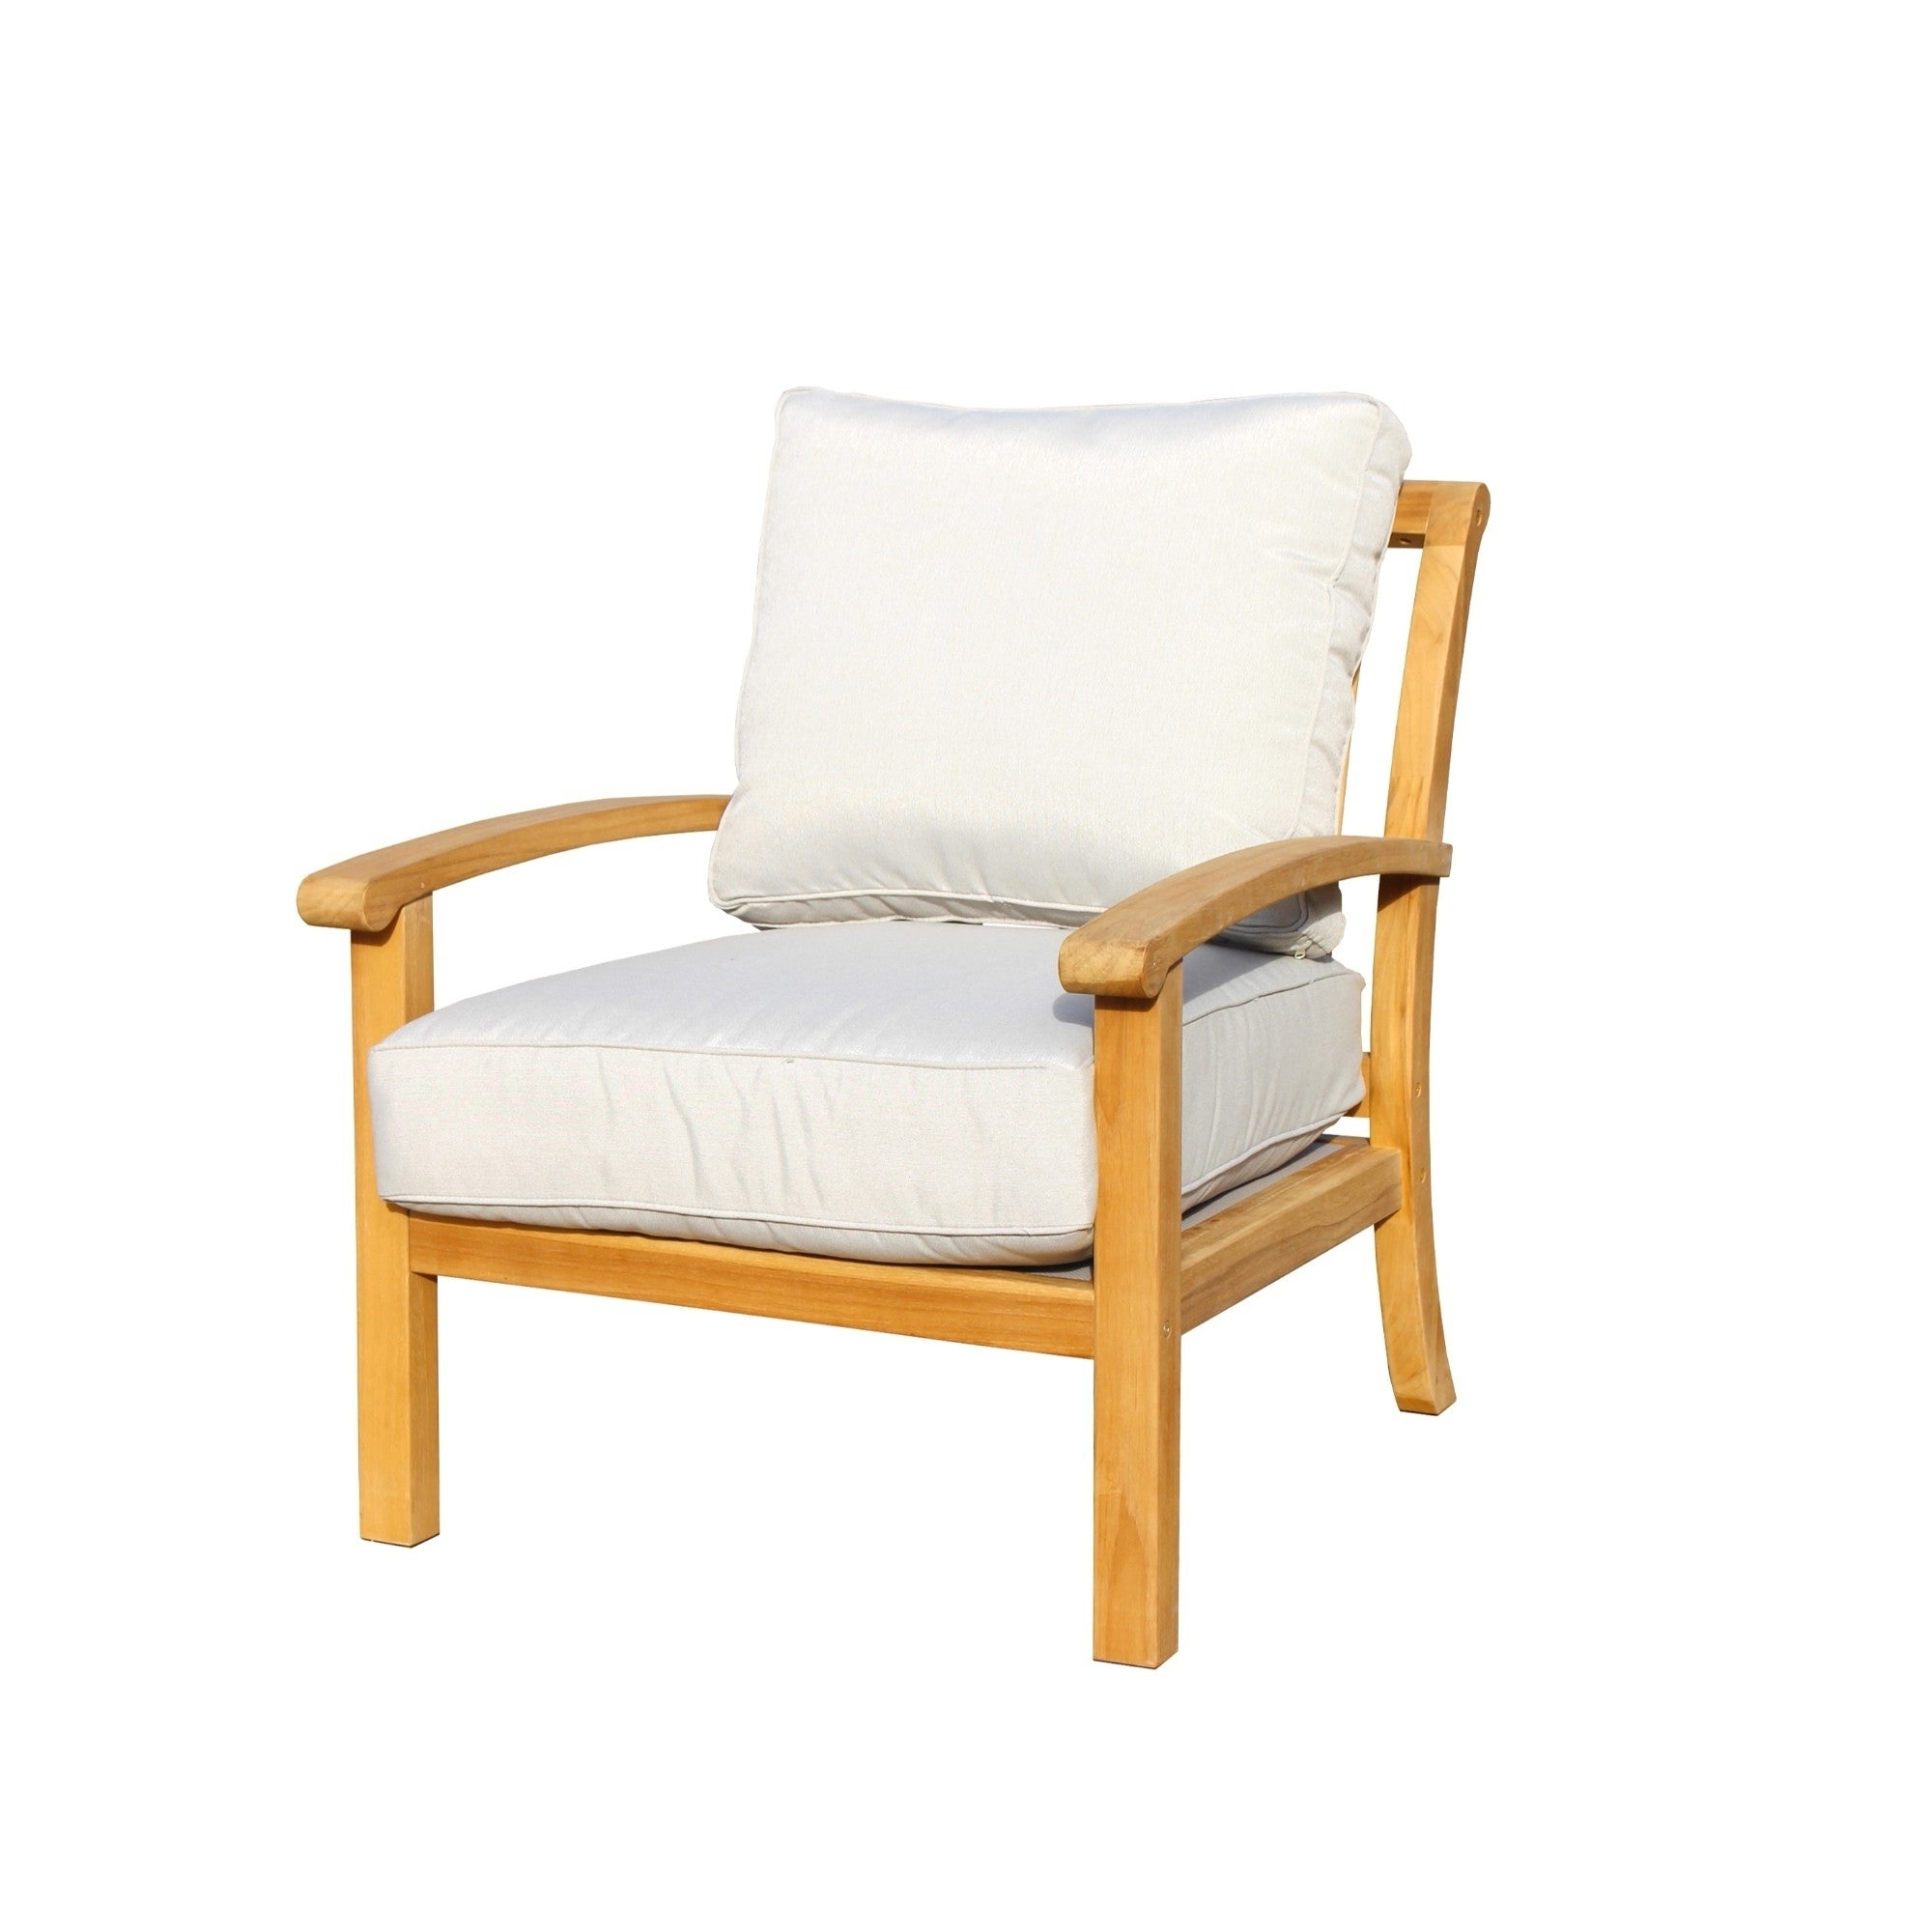 Details About Havenside Home Goodwin Natural Teak Outdoor Lounge Chair  Brown Single Throughout Preferred Havenside Home Surfside Outdoor Lounge Chairs (View 4 of 25)